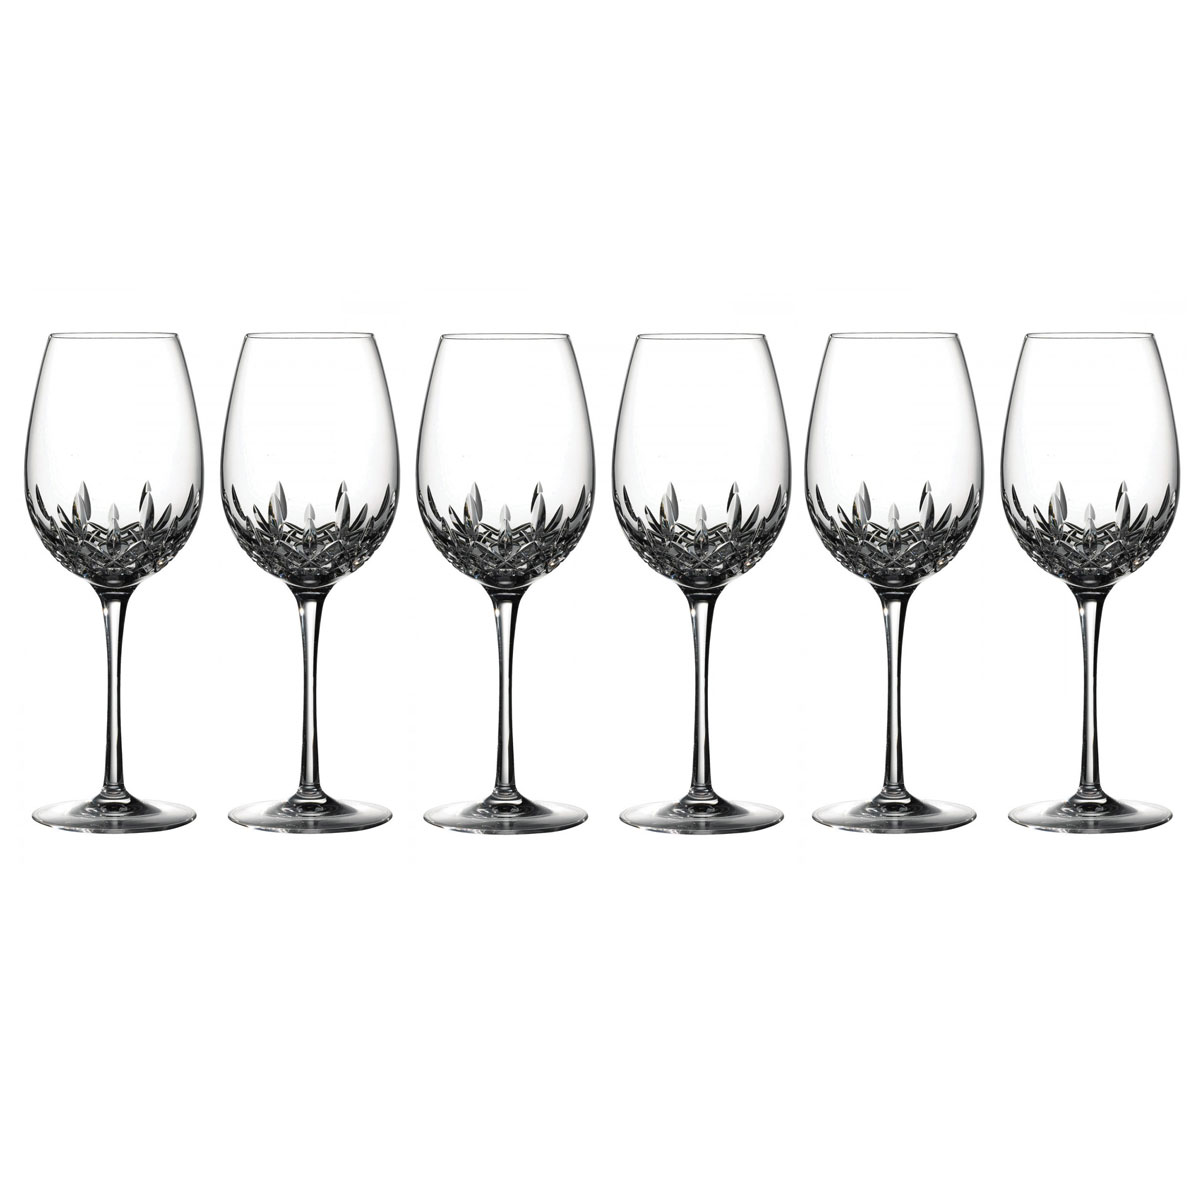 Waterford Crystal, Lismore Essence Red Wine Crystal Goblets, Set of 5+1 Free